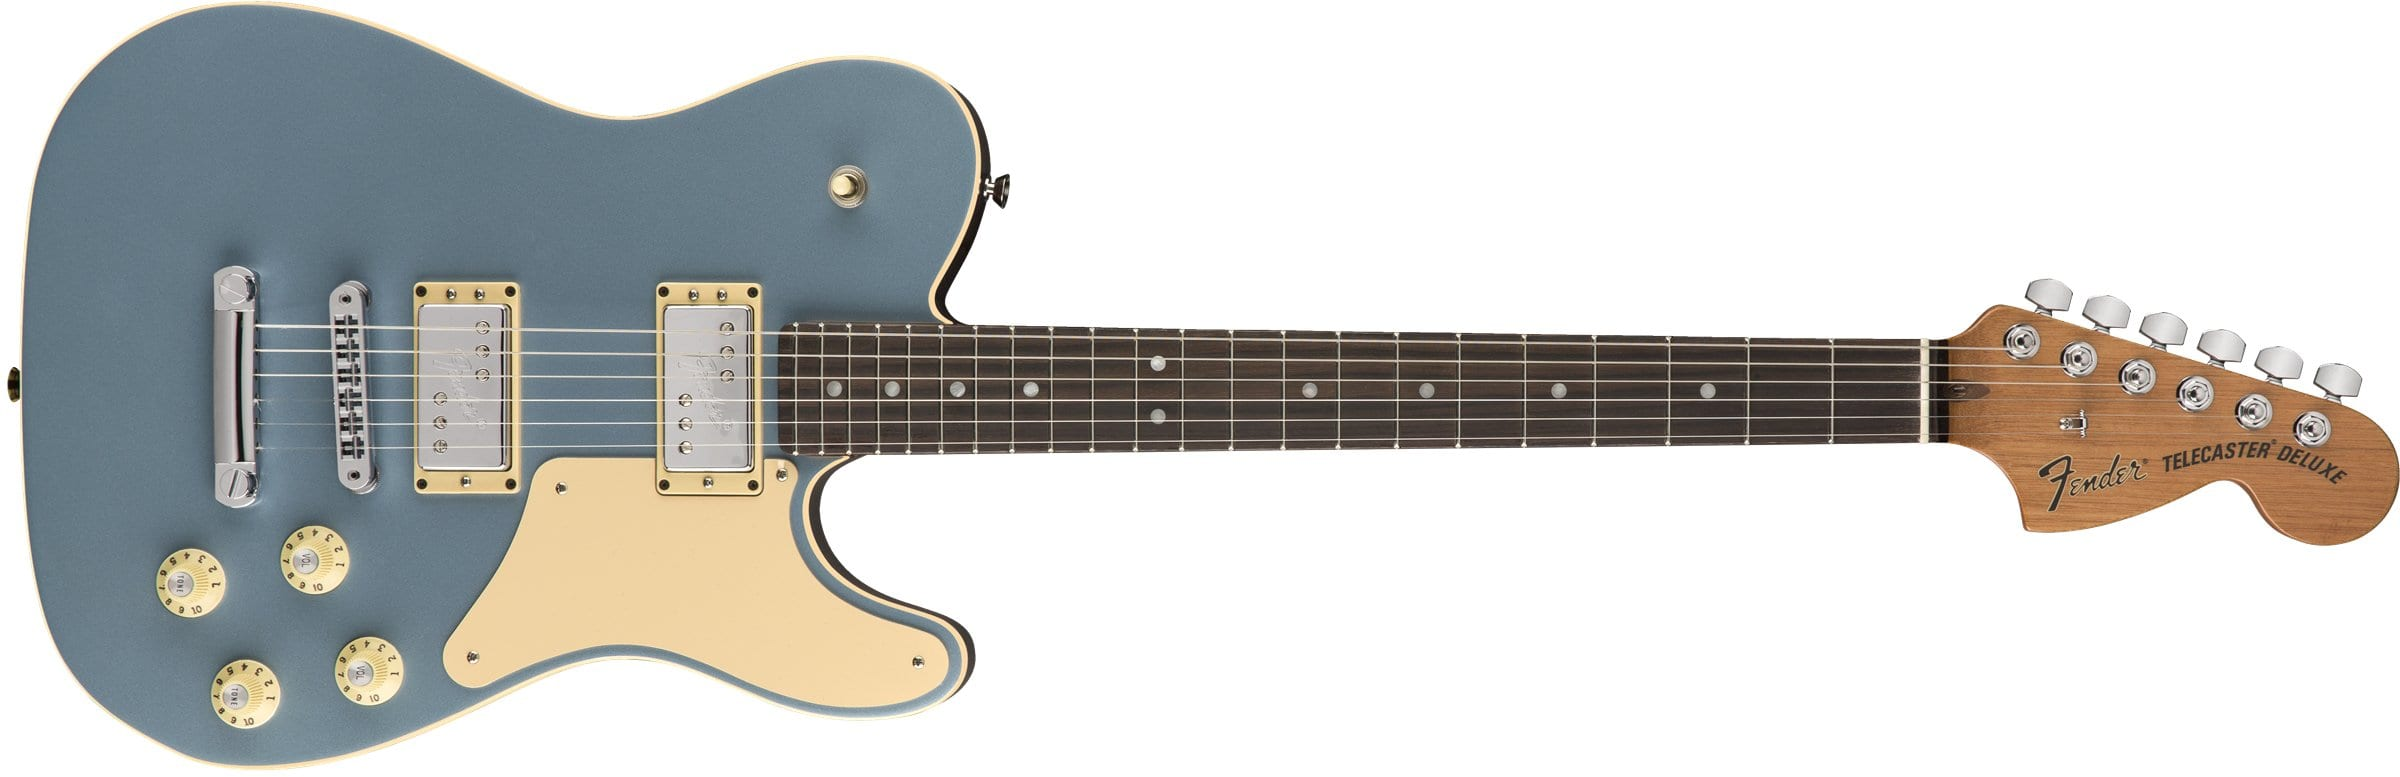 Leak Fender Preps New Parallel Universe Series For Namm 2018 Launch Thread Tele With 4 Way Switch Alternate Wiring Plz Help Troublemaker